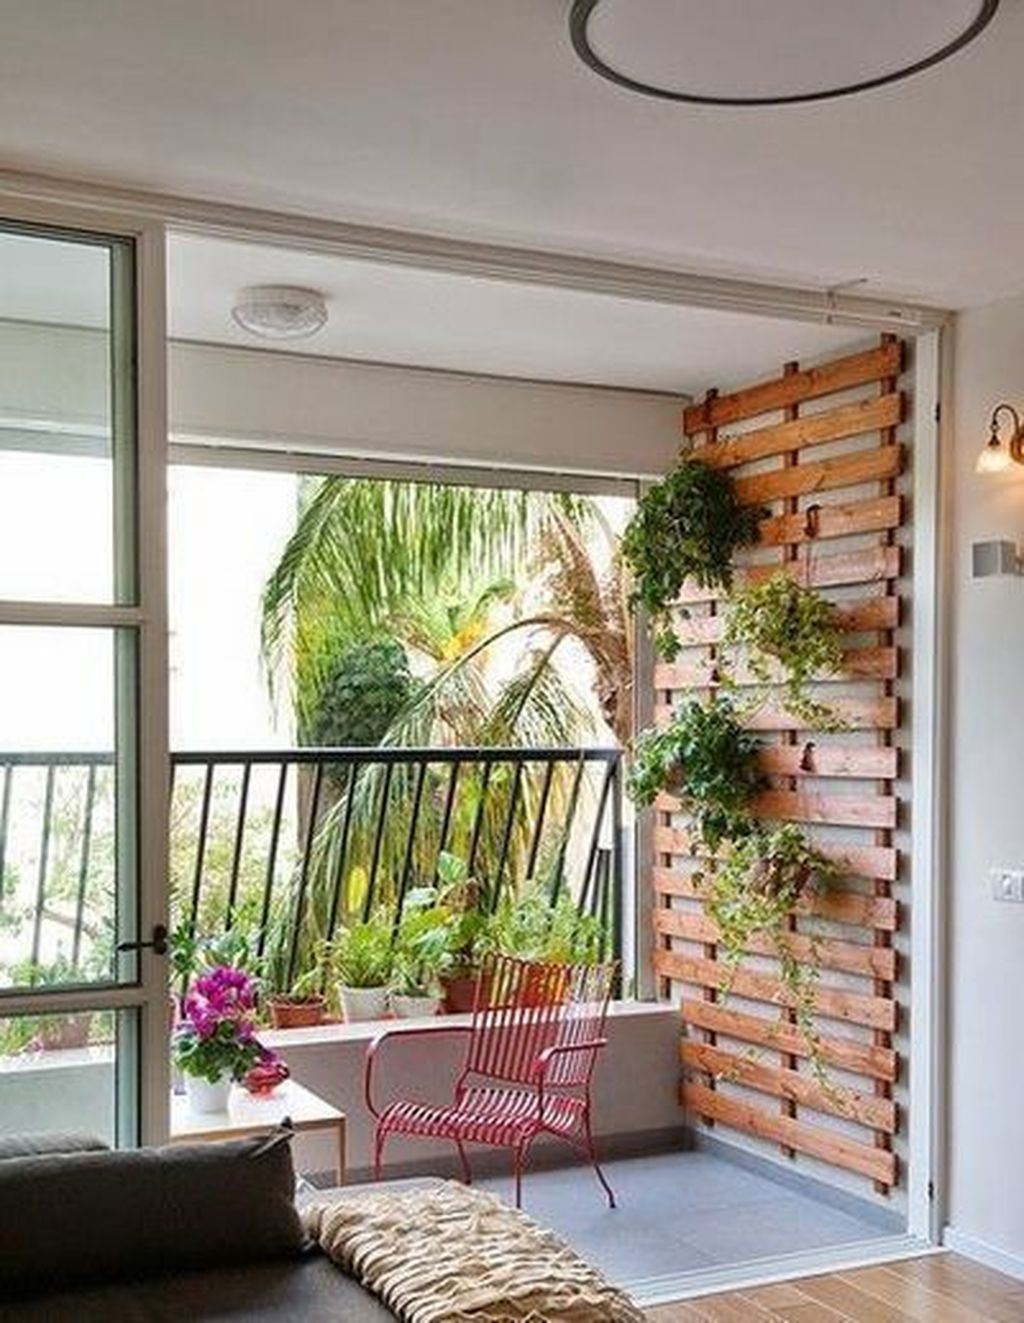 Stunning Apartment Garden Design Ideas 22